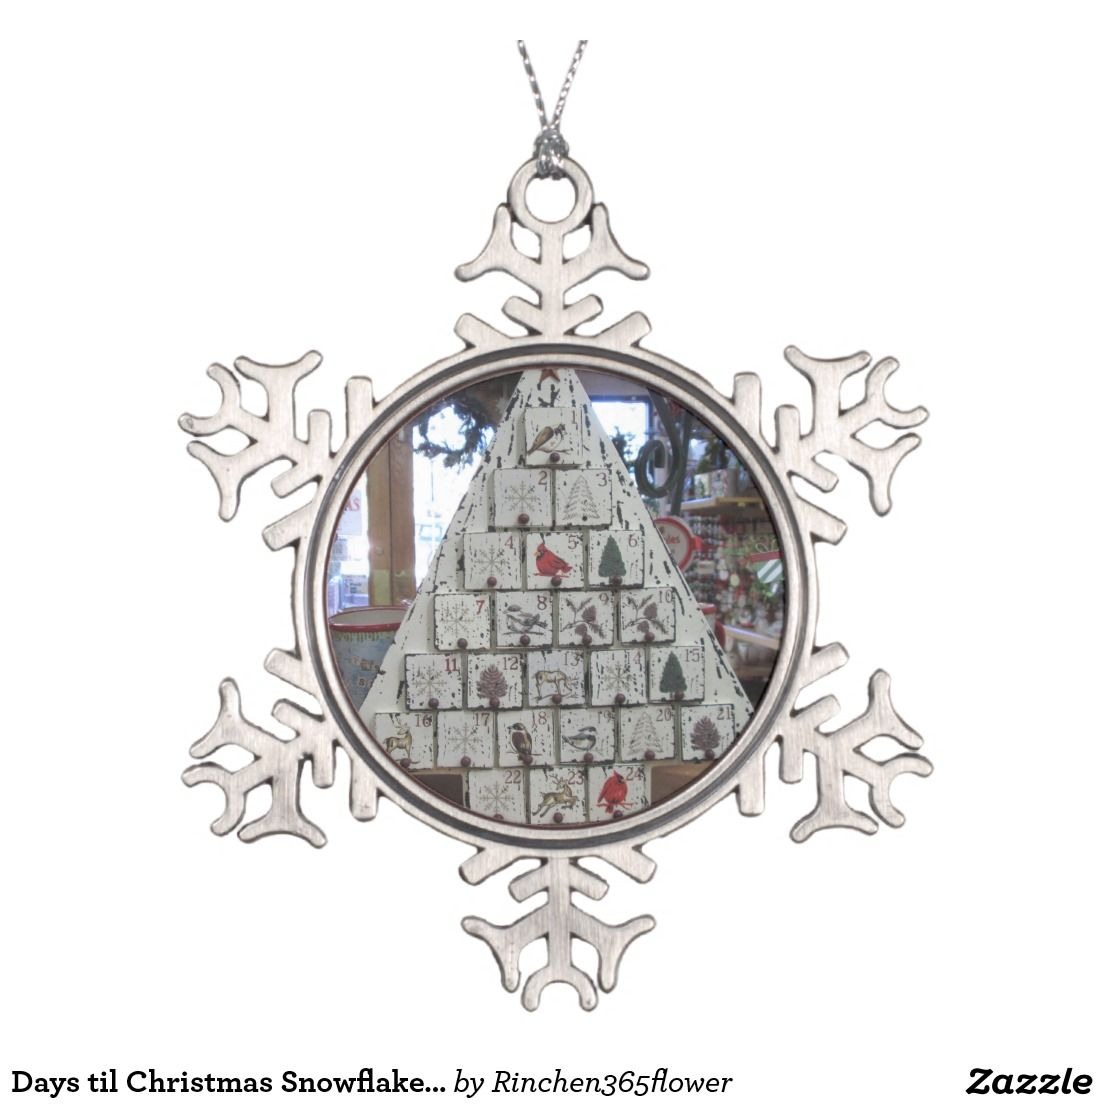 snowflakes snowflake stock forming the free a image original greeting amidst noel word with decor background on black photo decorations freeimageslive tiny